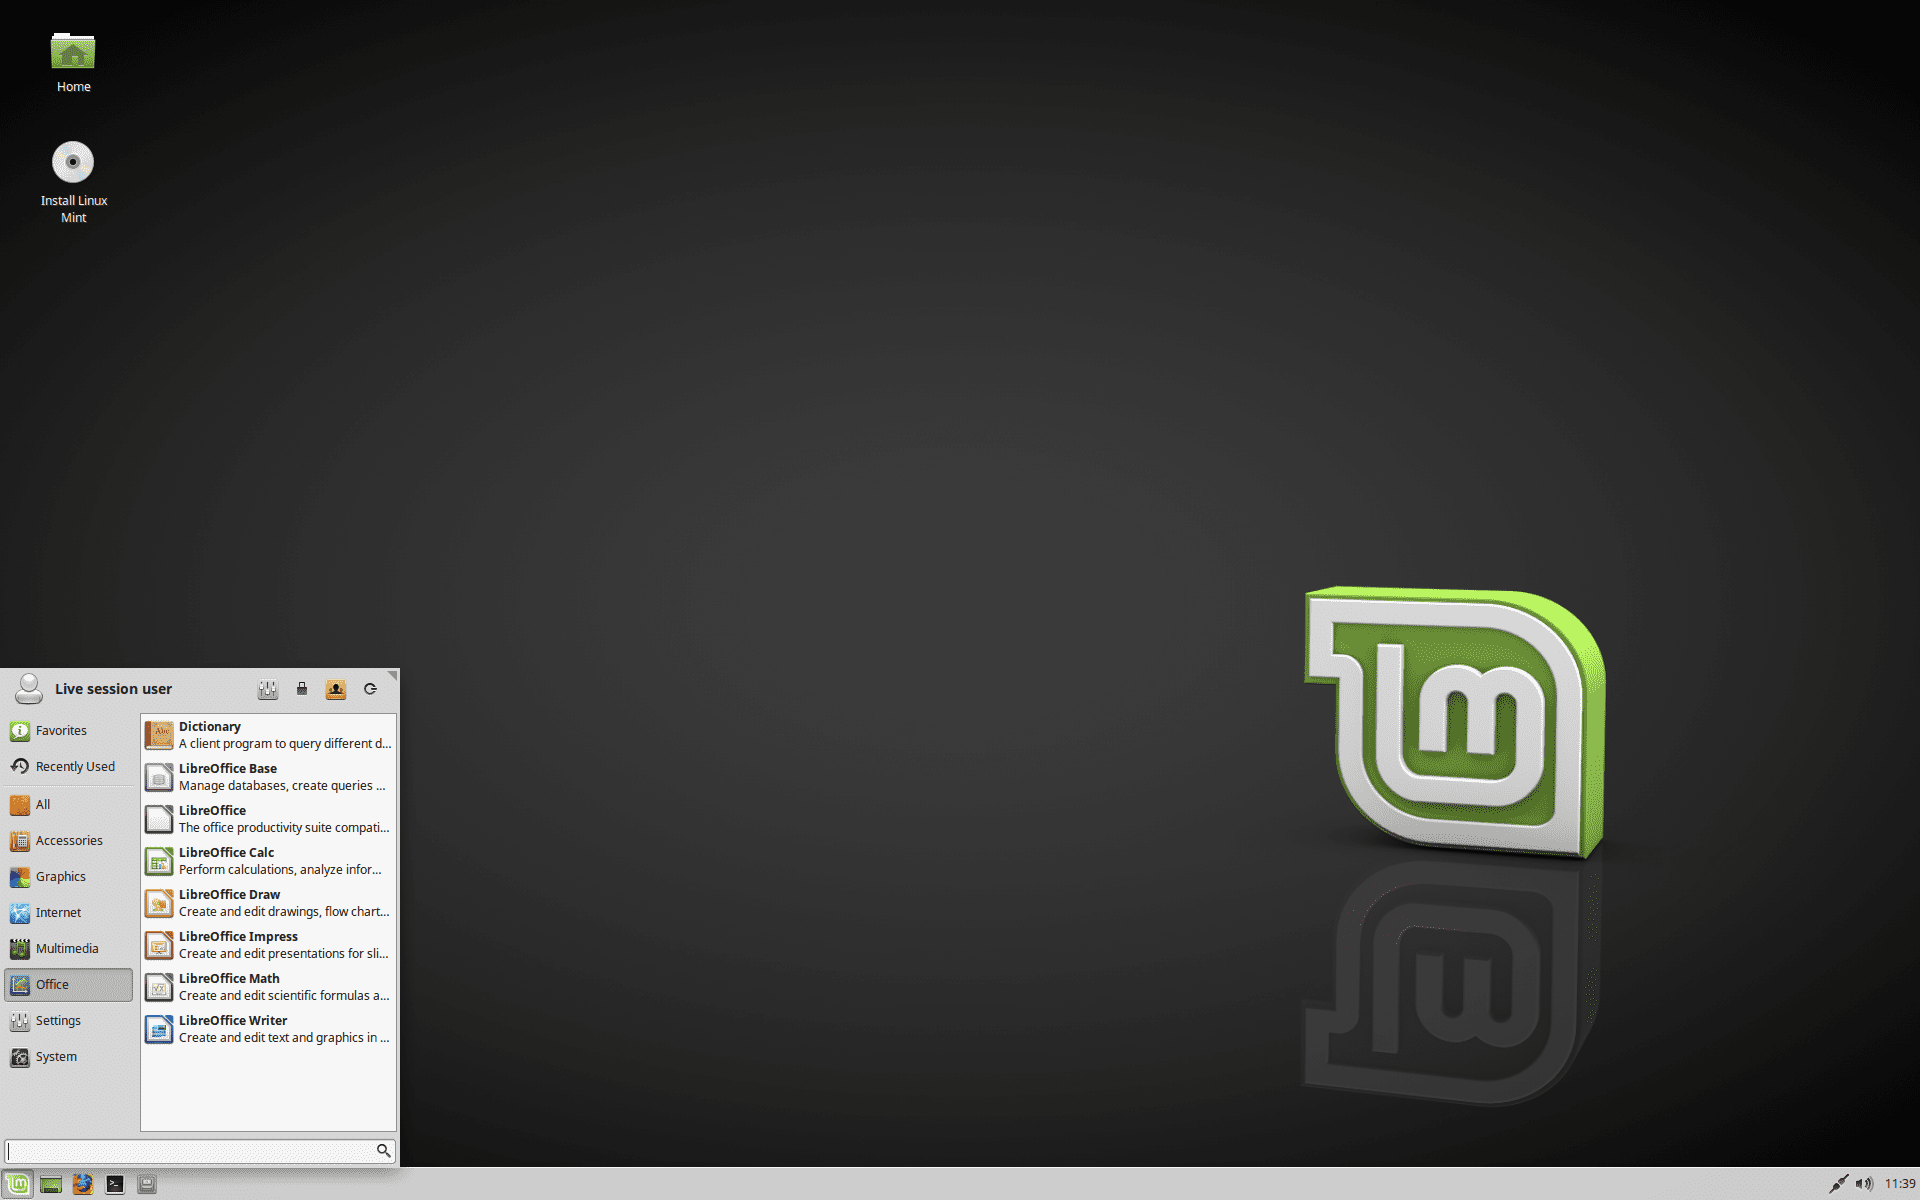 Linux Mint 18.1 Serena Xfce Edition